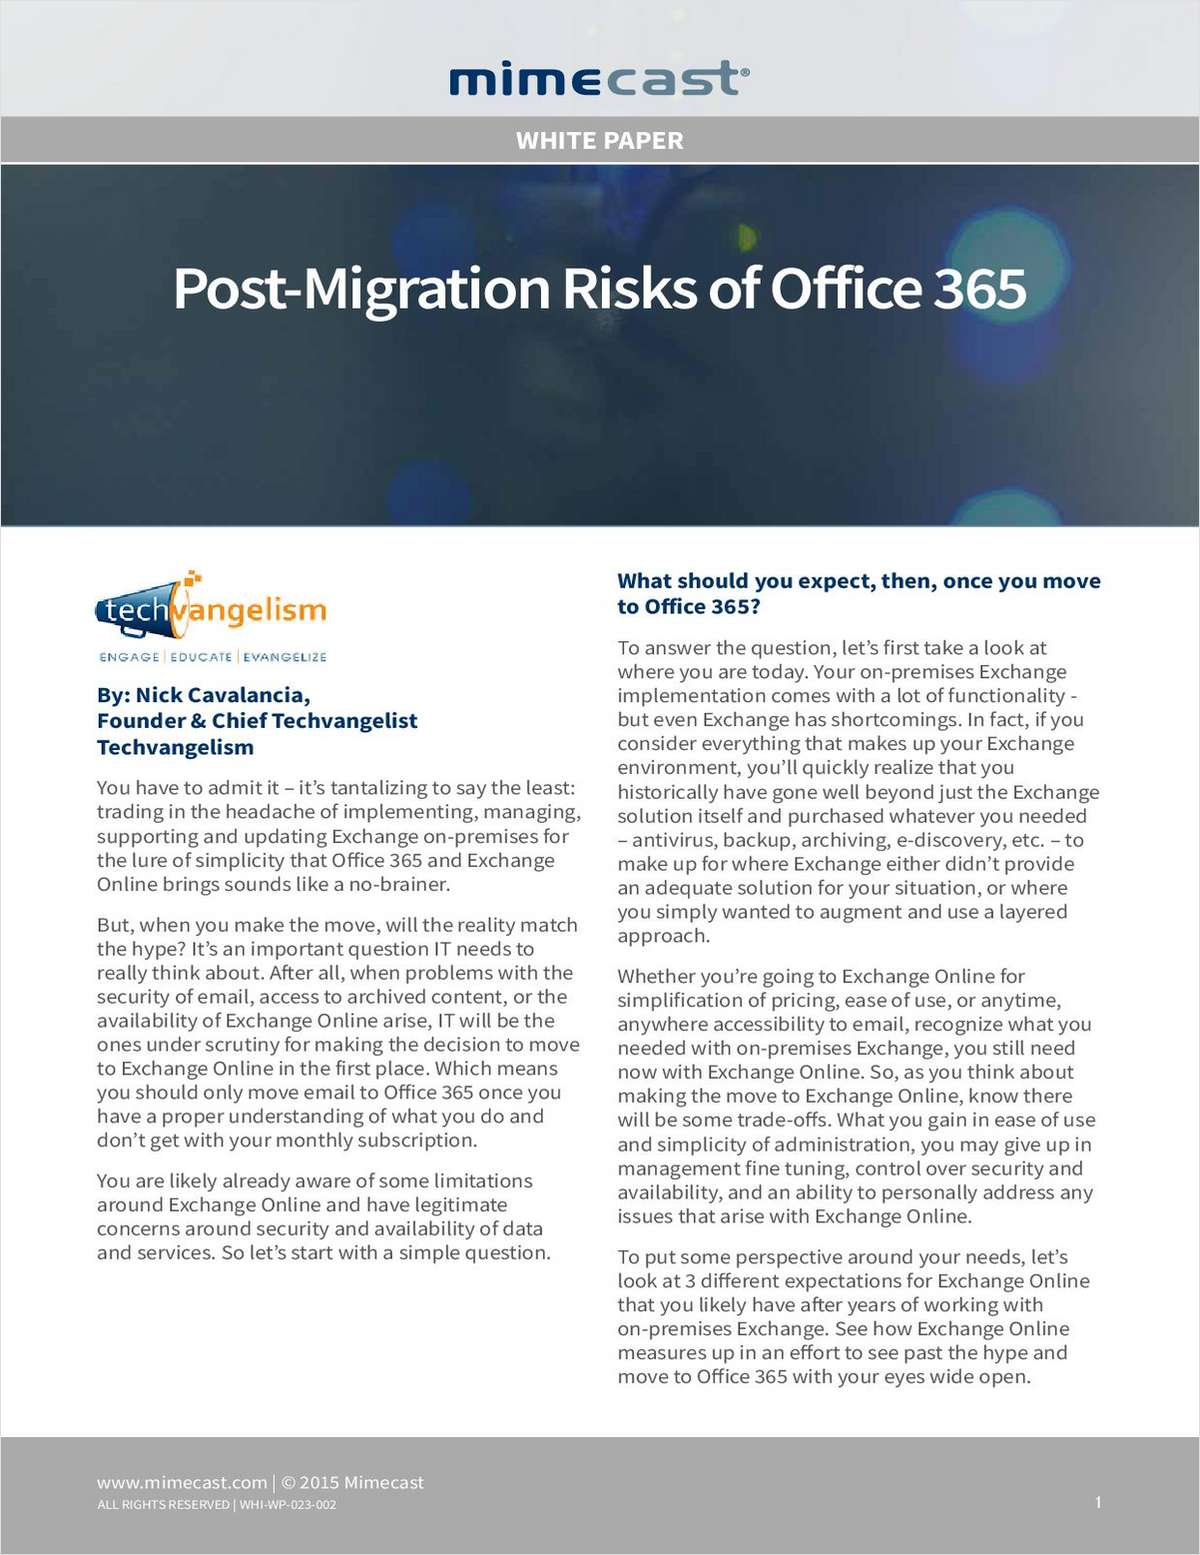 Post-Migration Risks of Office 365: Market-Driven Expectations And Actual Realities Of Moving To The Cloud